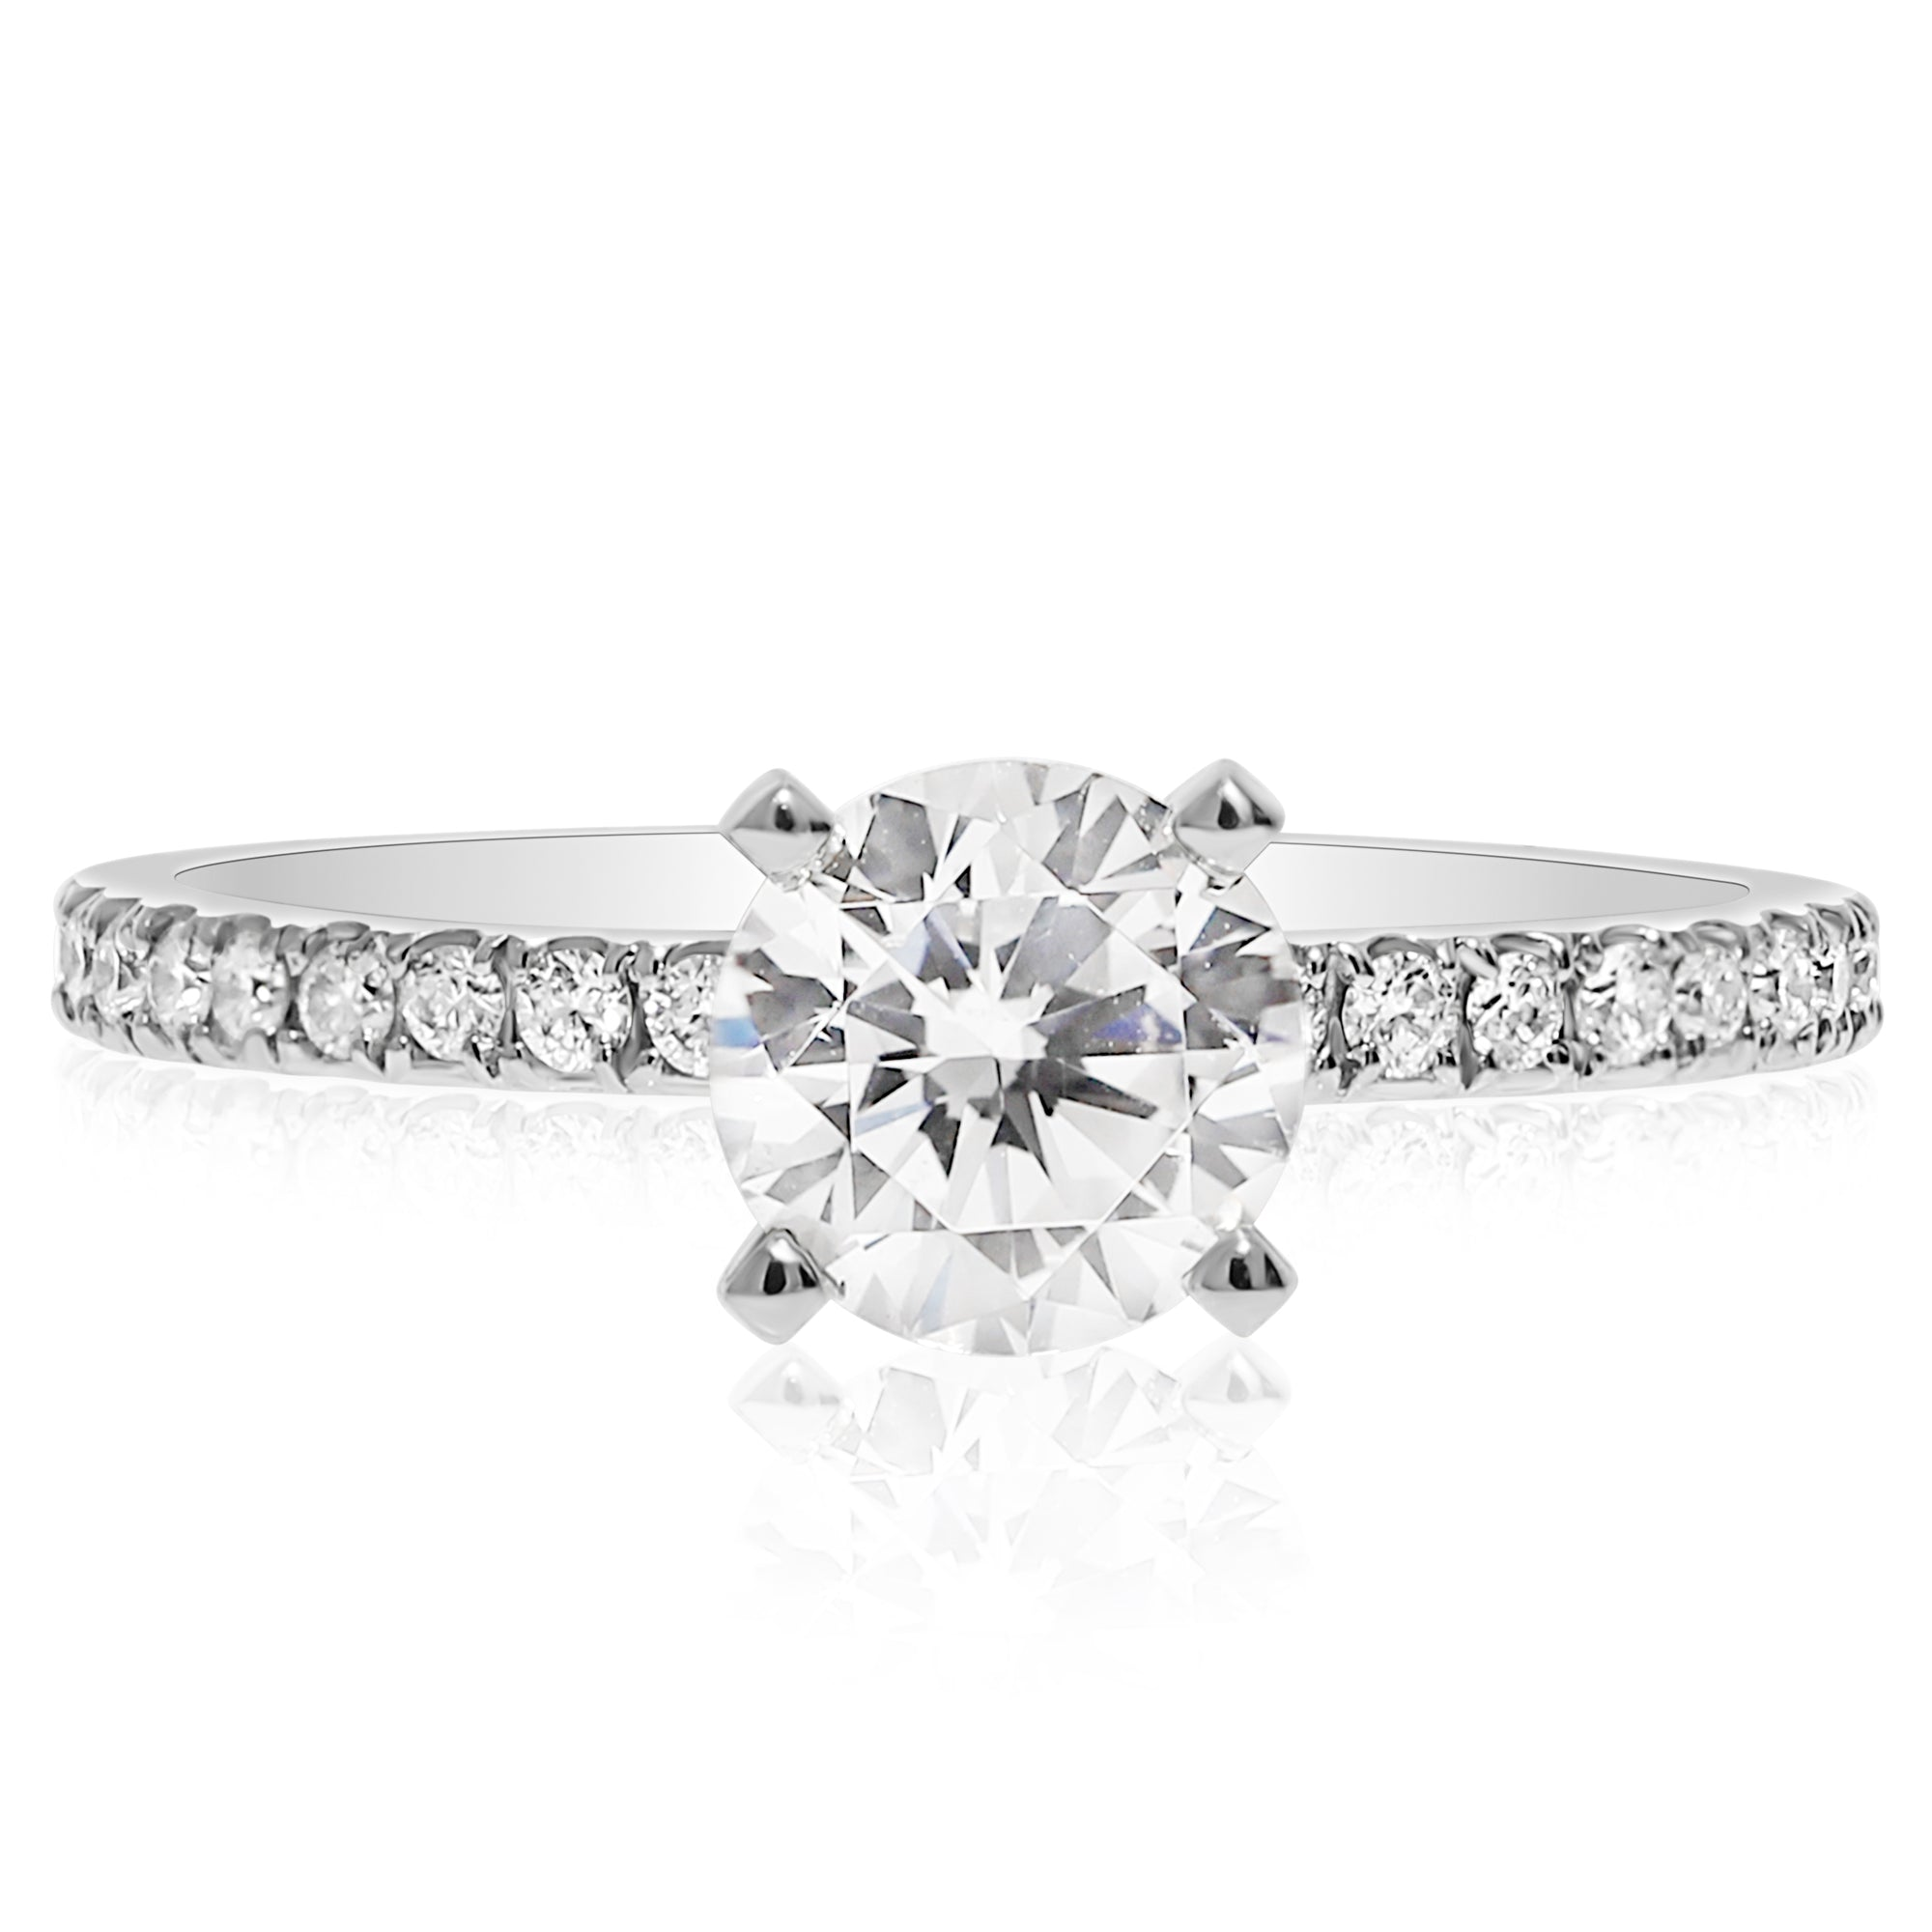 diamondland mounted beautiful diamond jewelry engagement carat rings ring